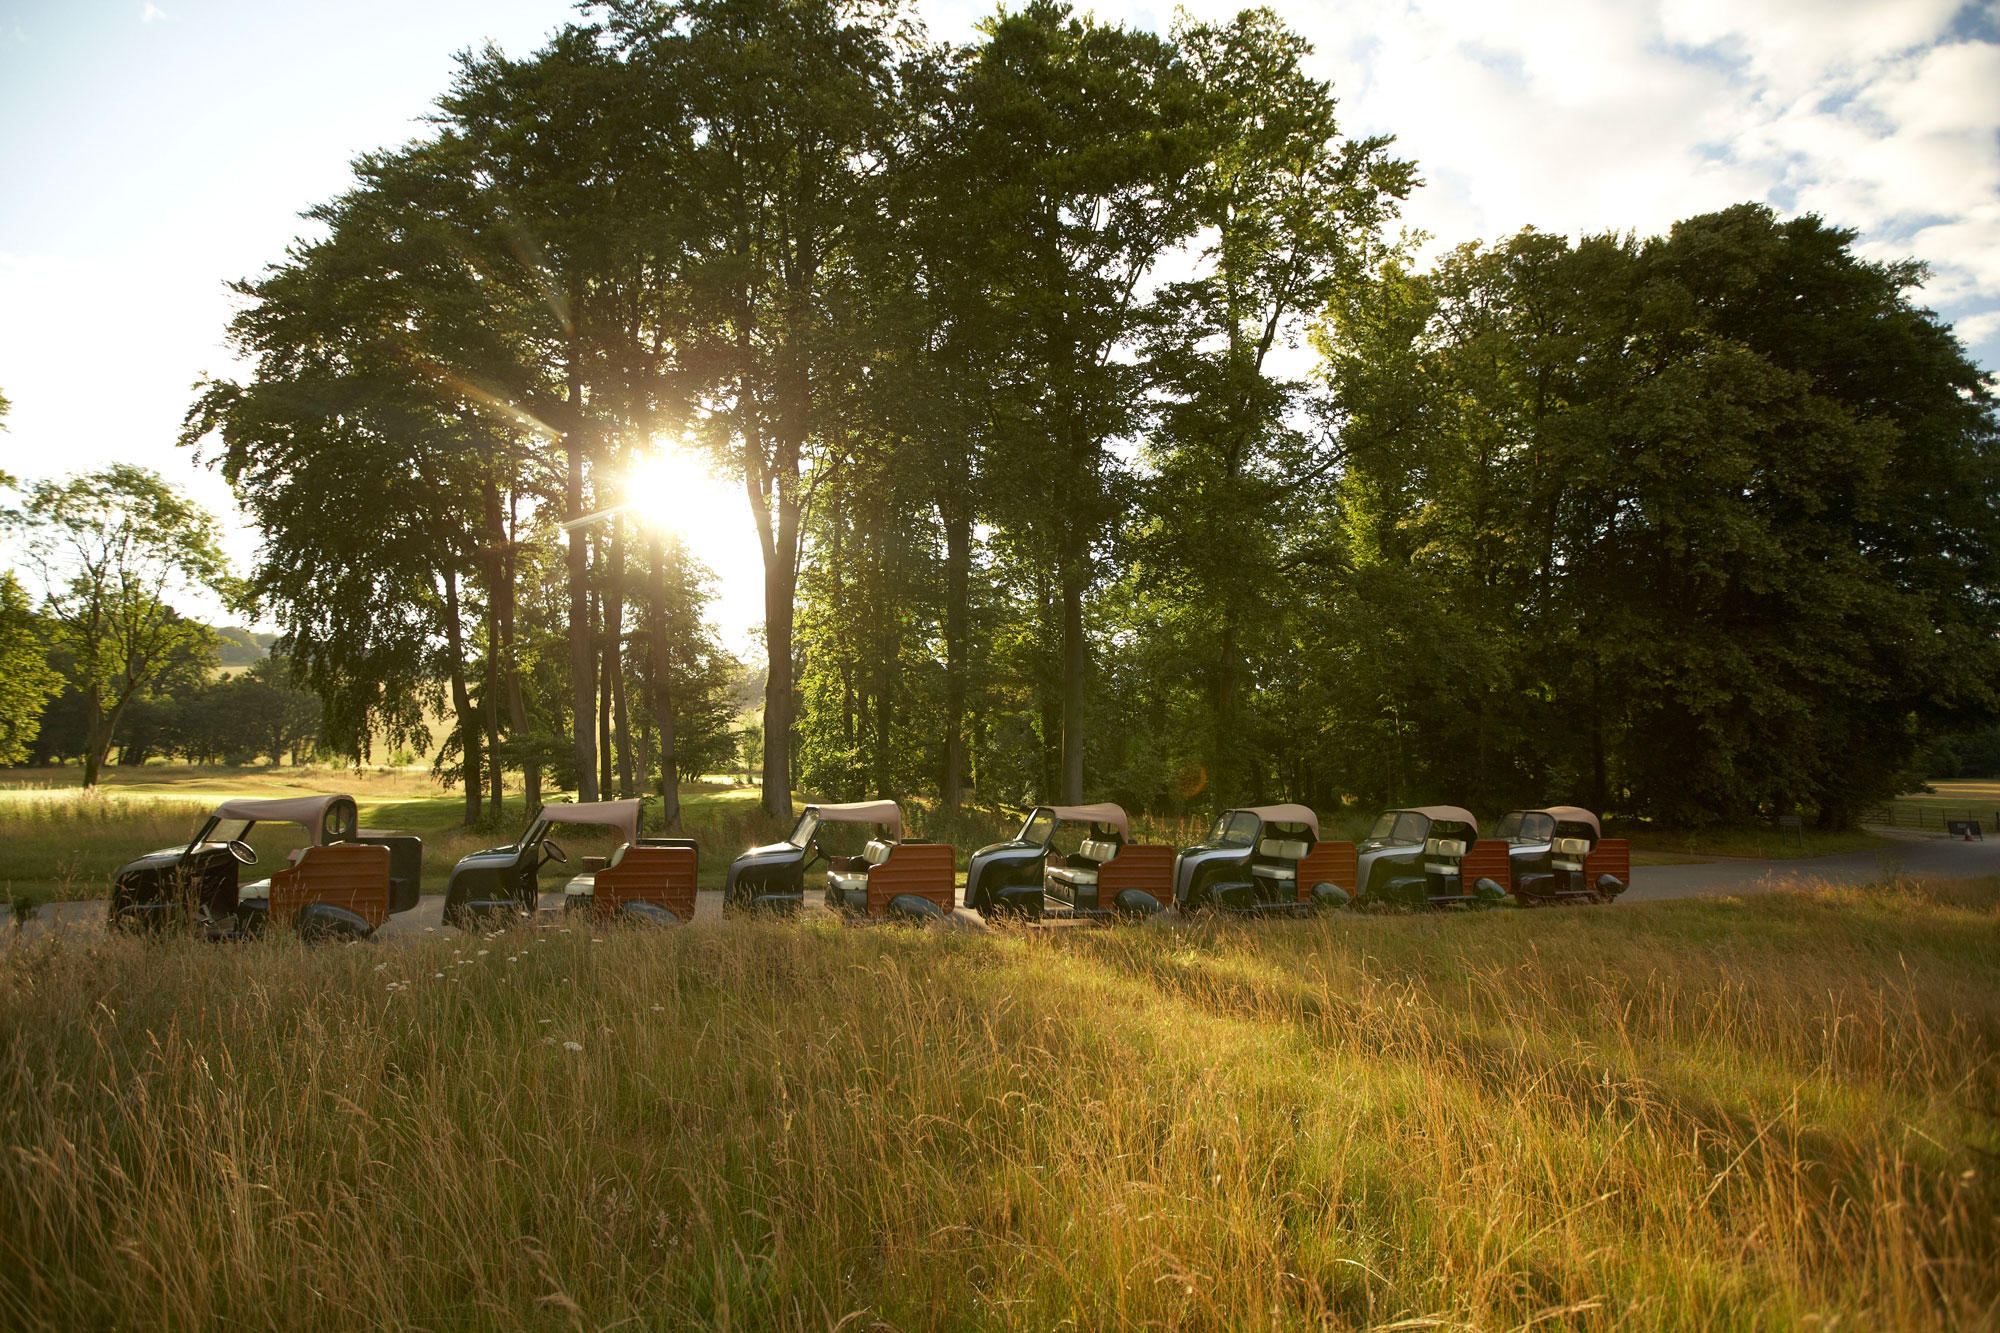 The luxurious Woody 2 golf buggies at Golf at Goodwood